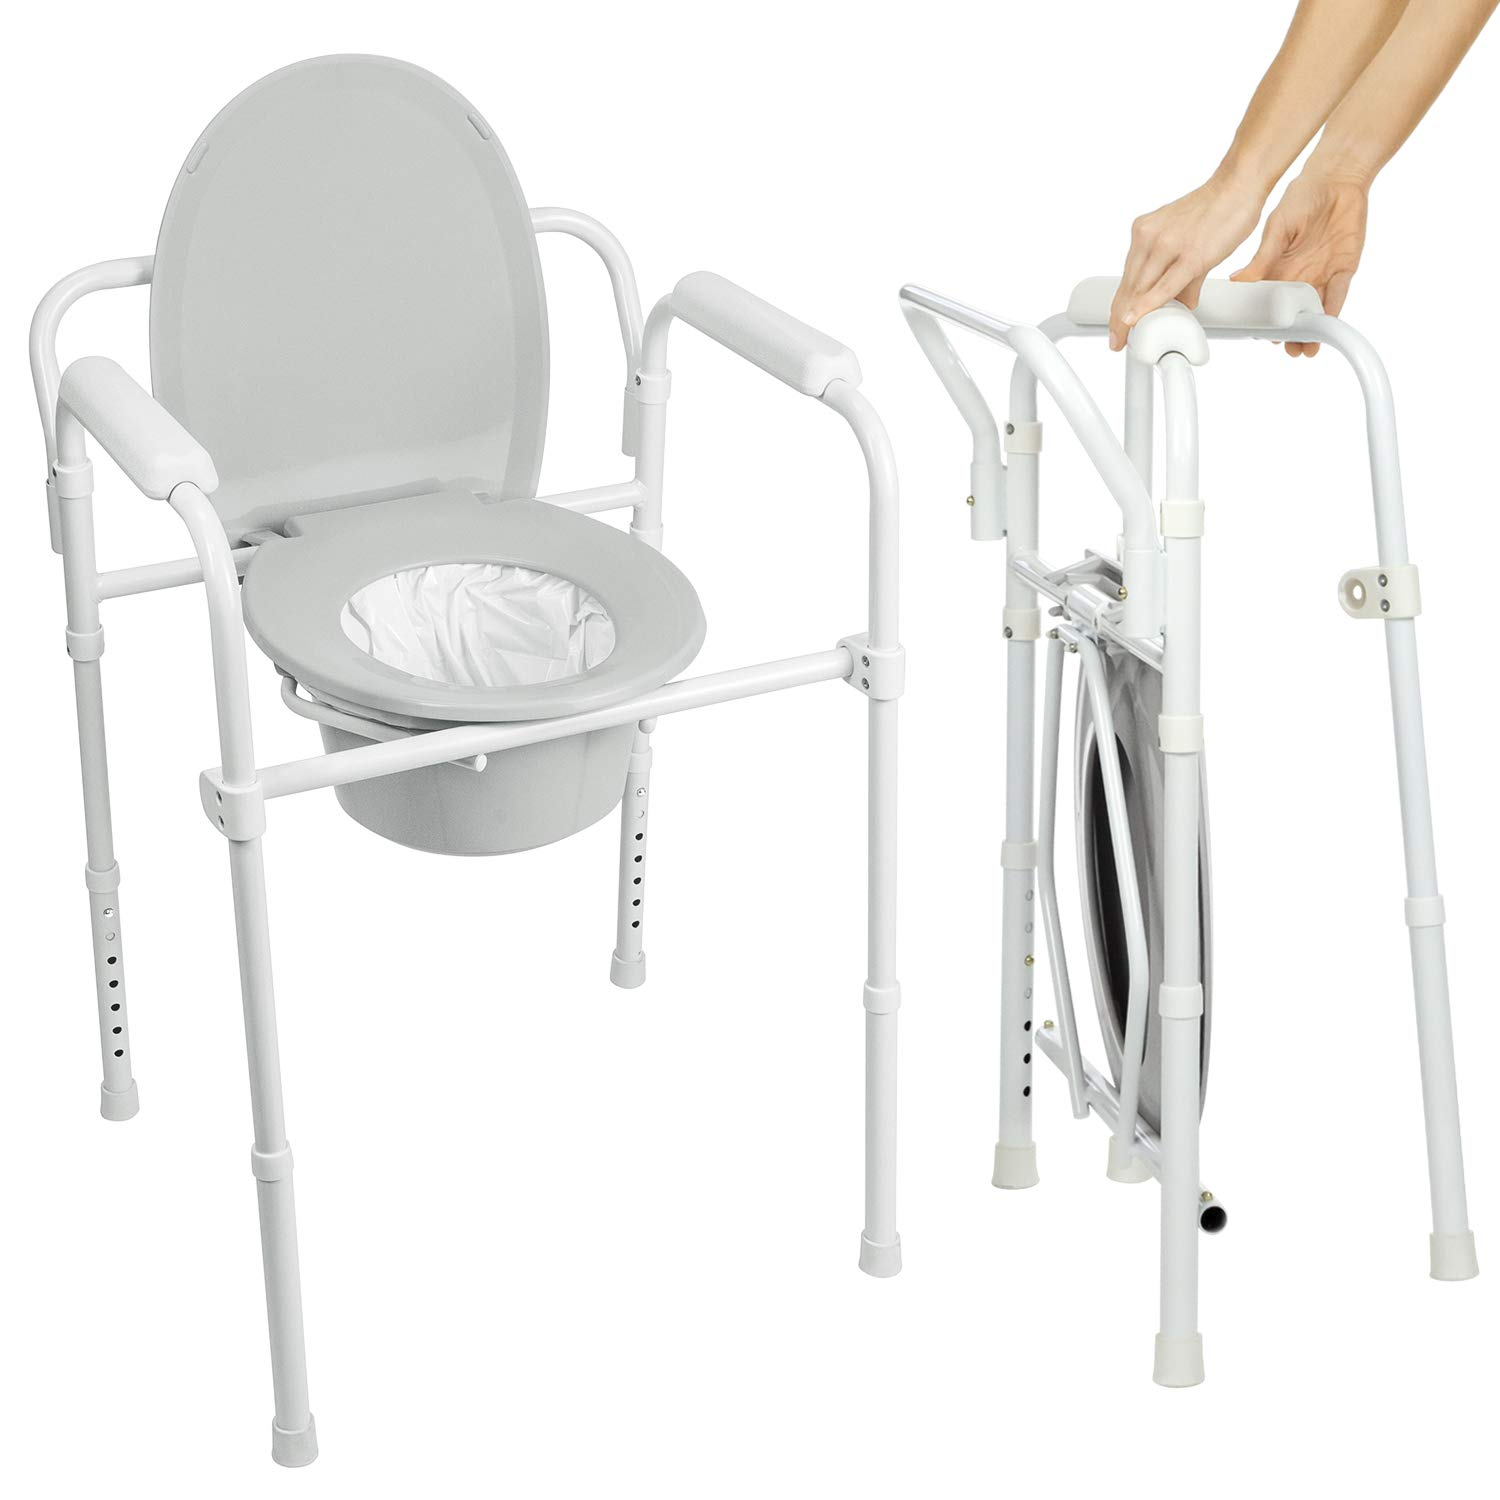 Best Rated In Commodes Amp Liners Amp Helpful Customer Reviews